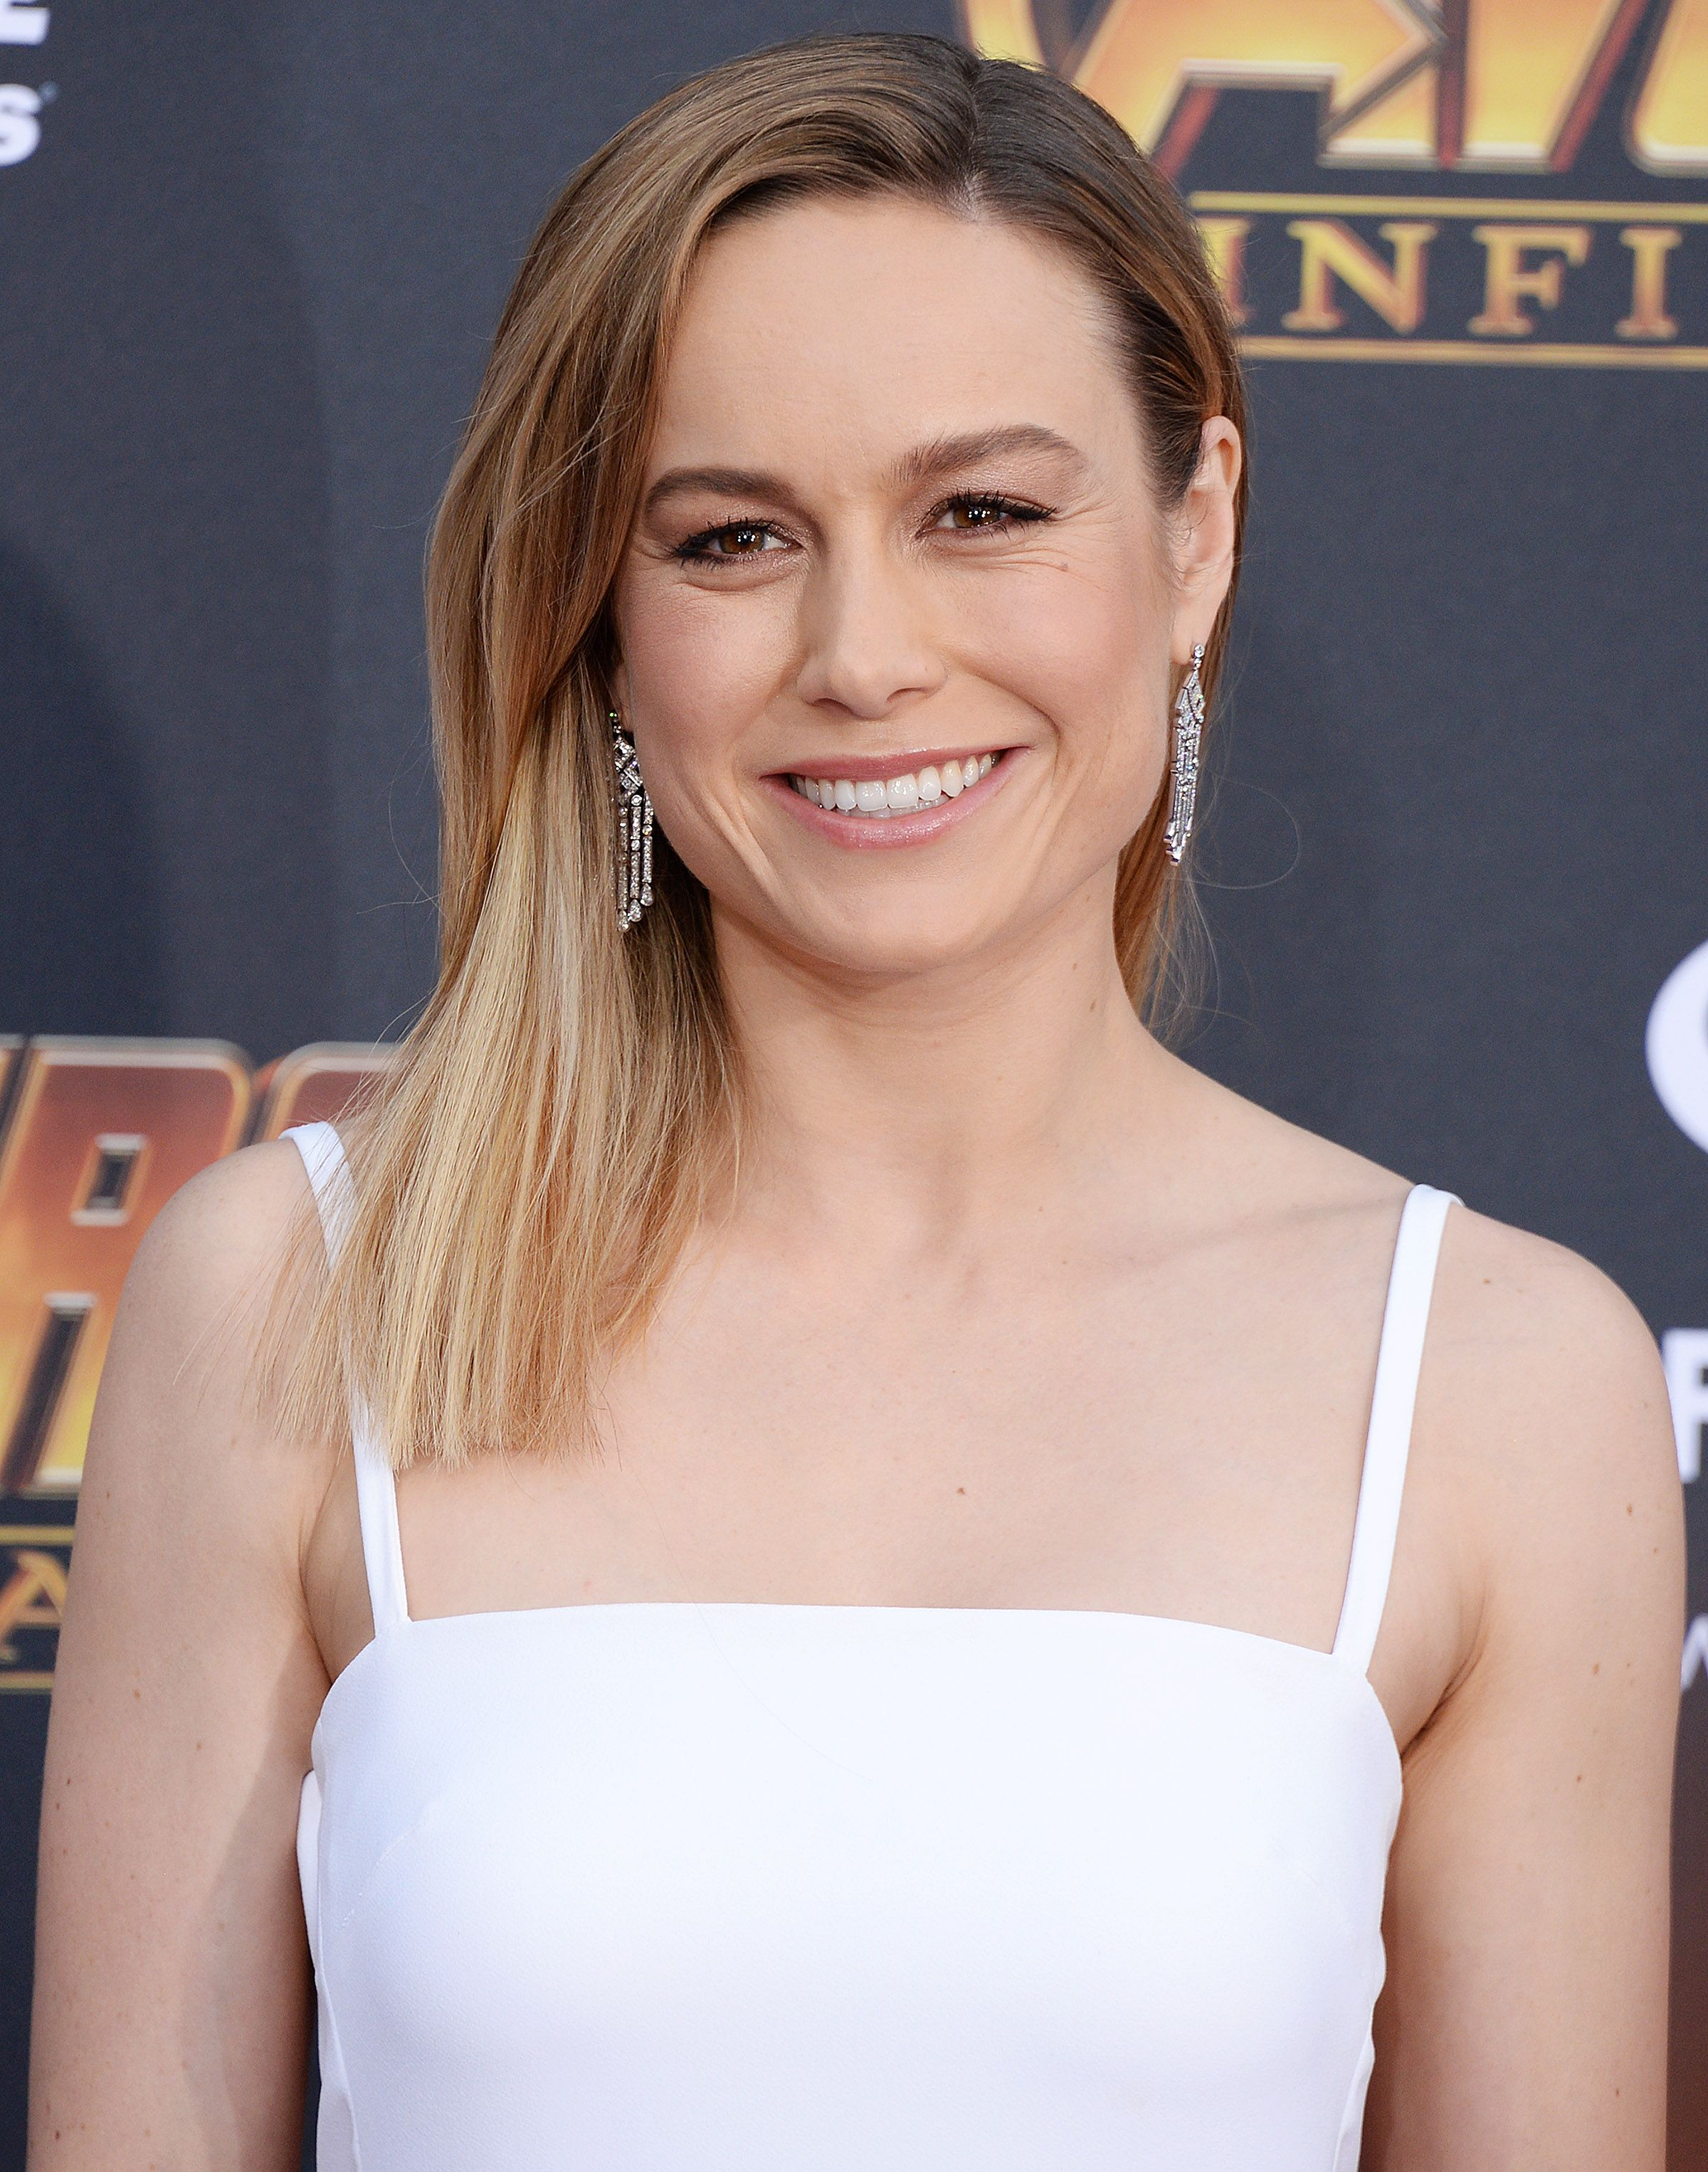 Brie Larson Braless. 2018-2019 celebrityes photos leaks! new picture